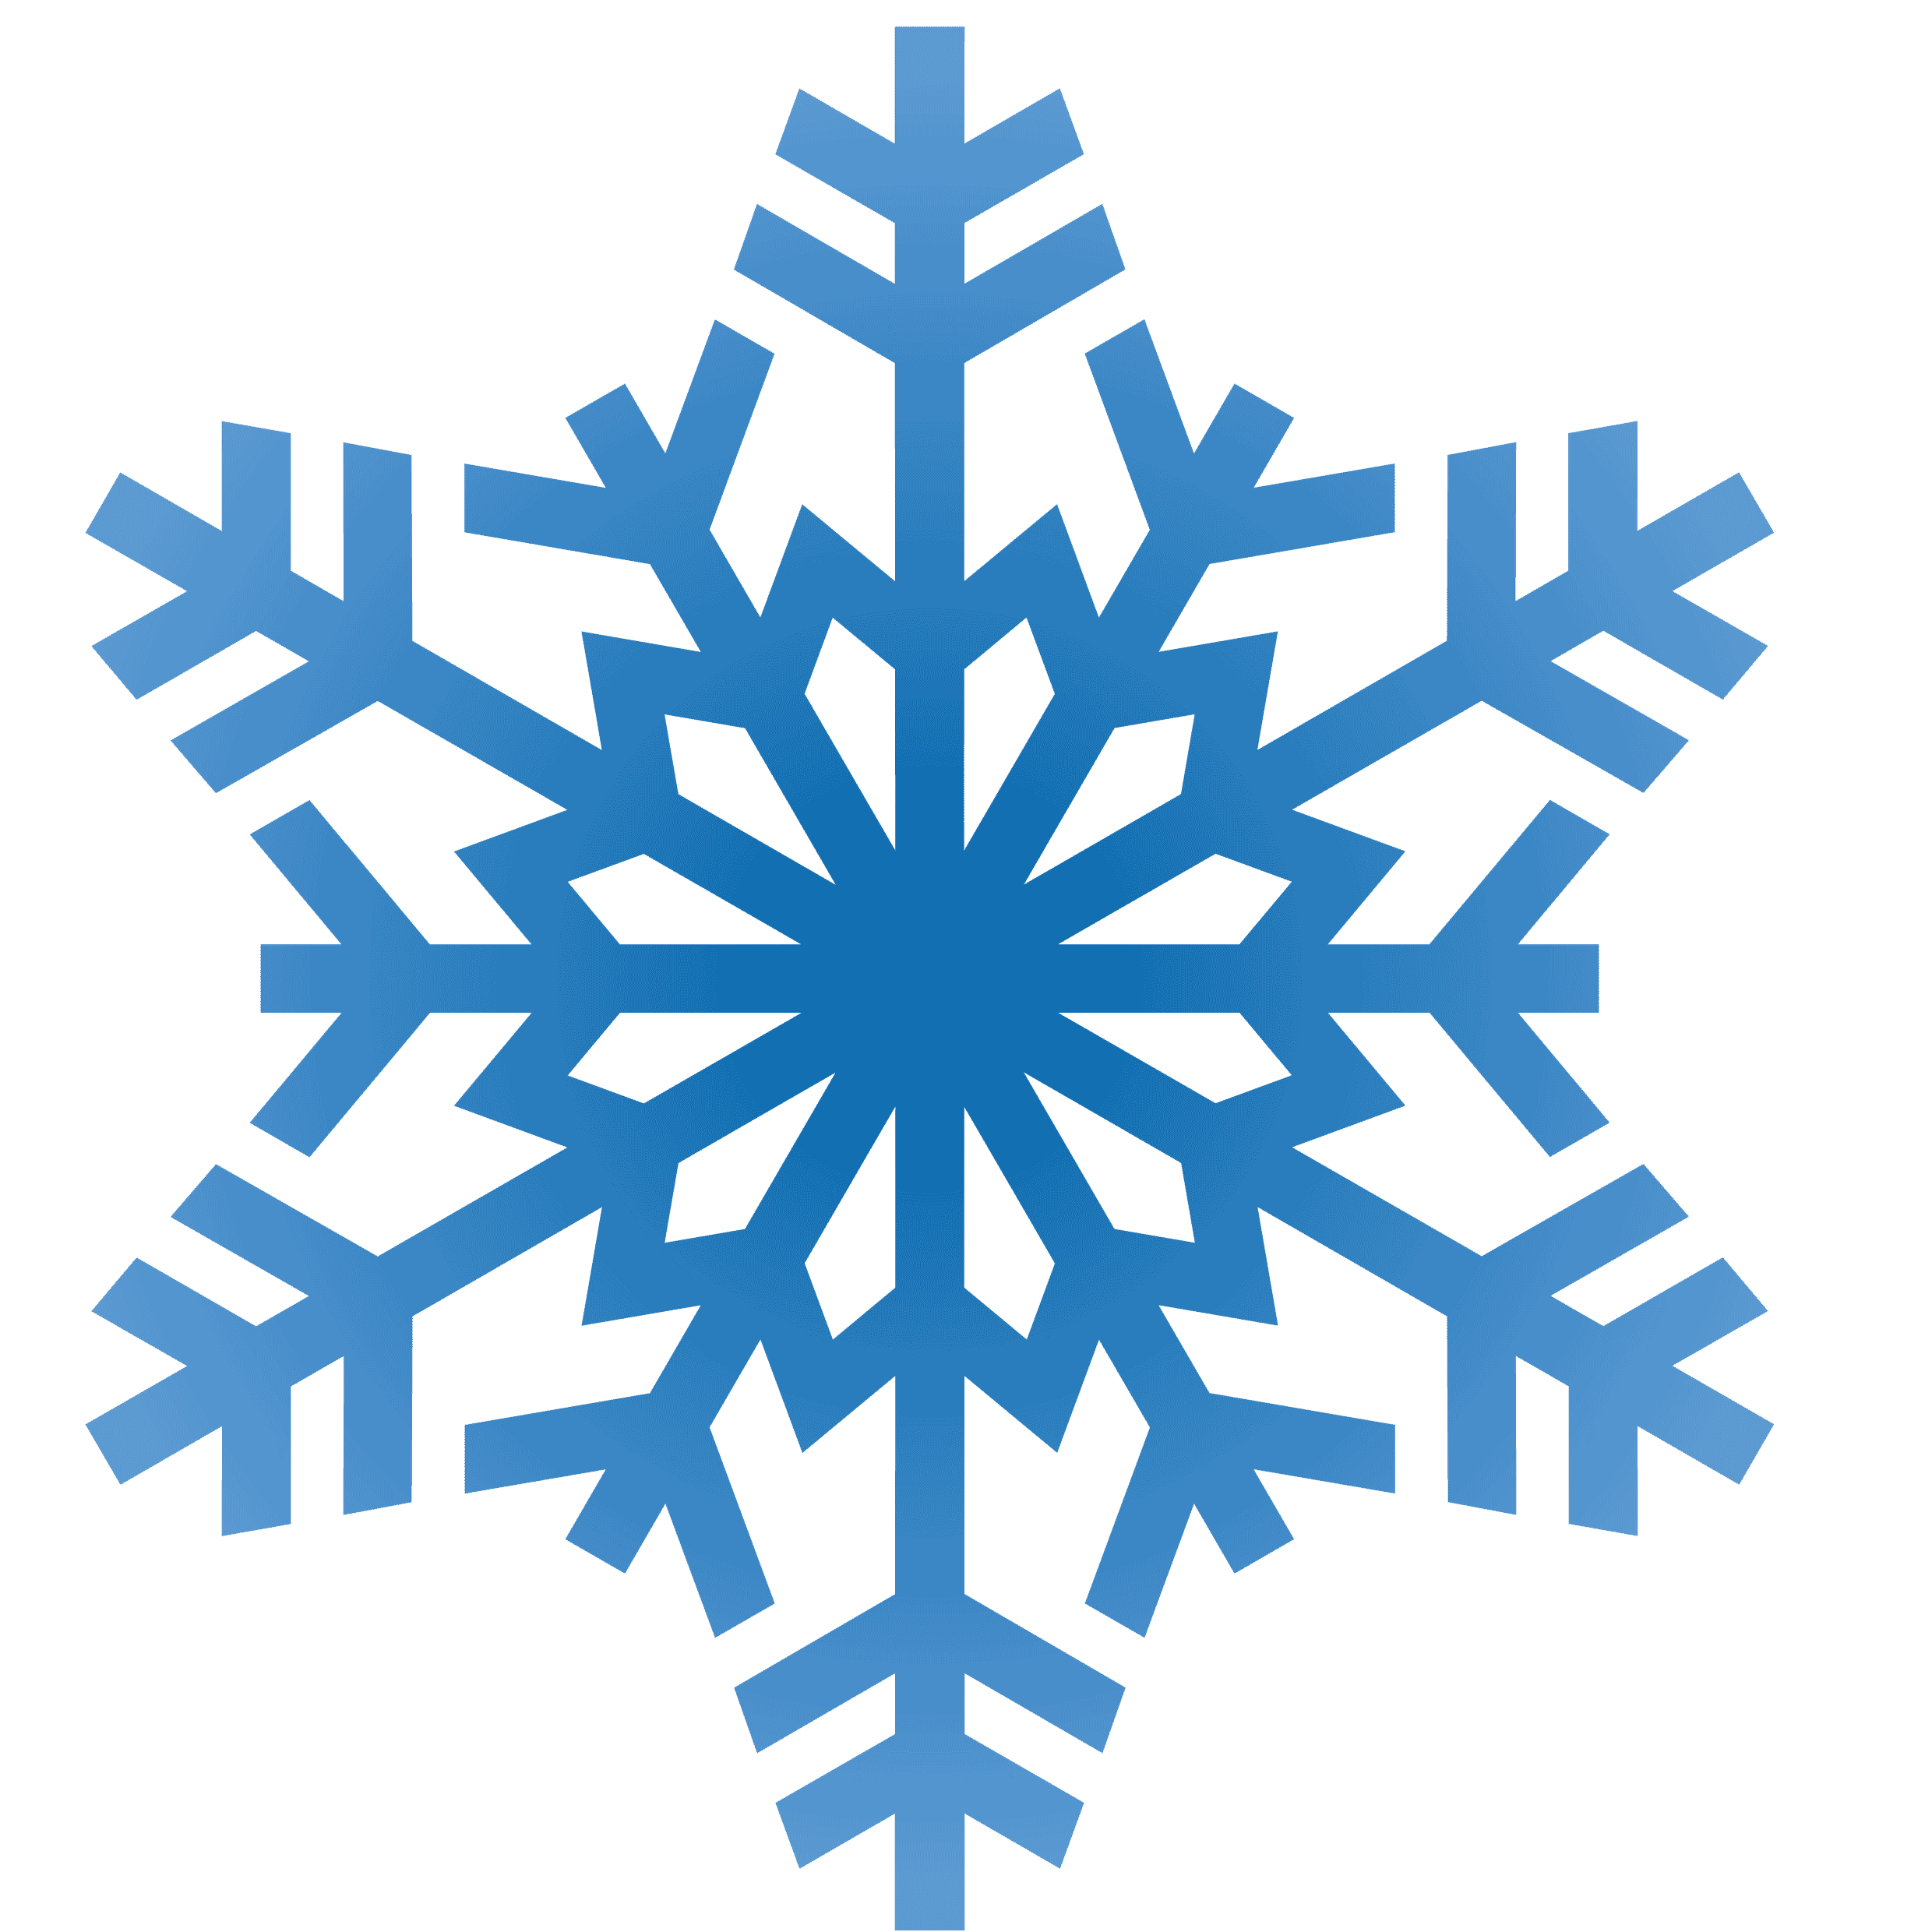 2480x2480 Frozen Snowflake Png Image Png Mart